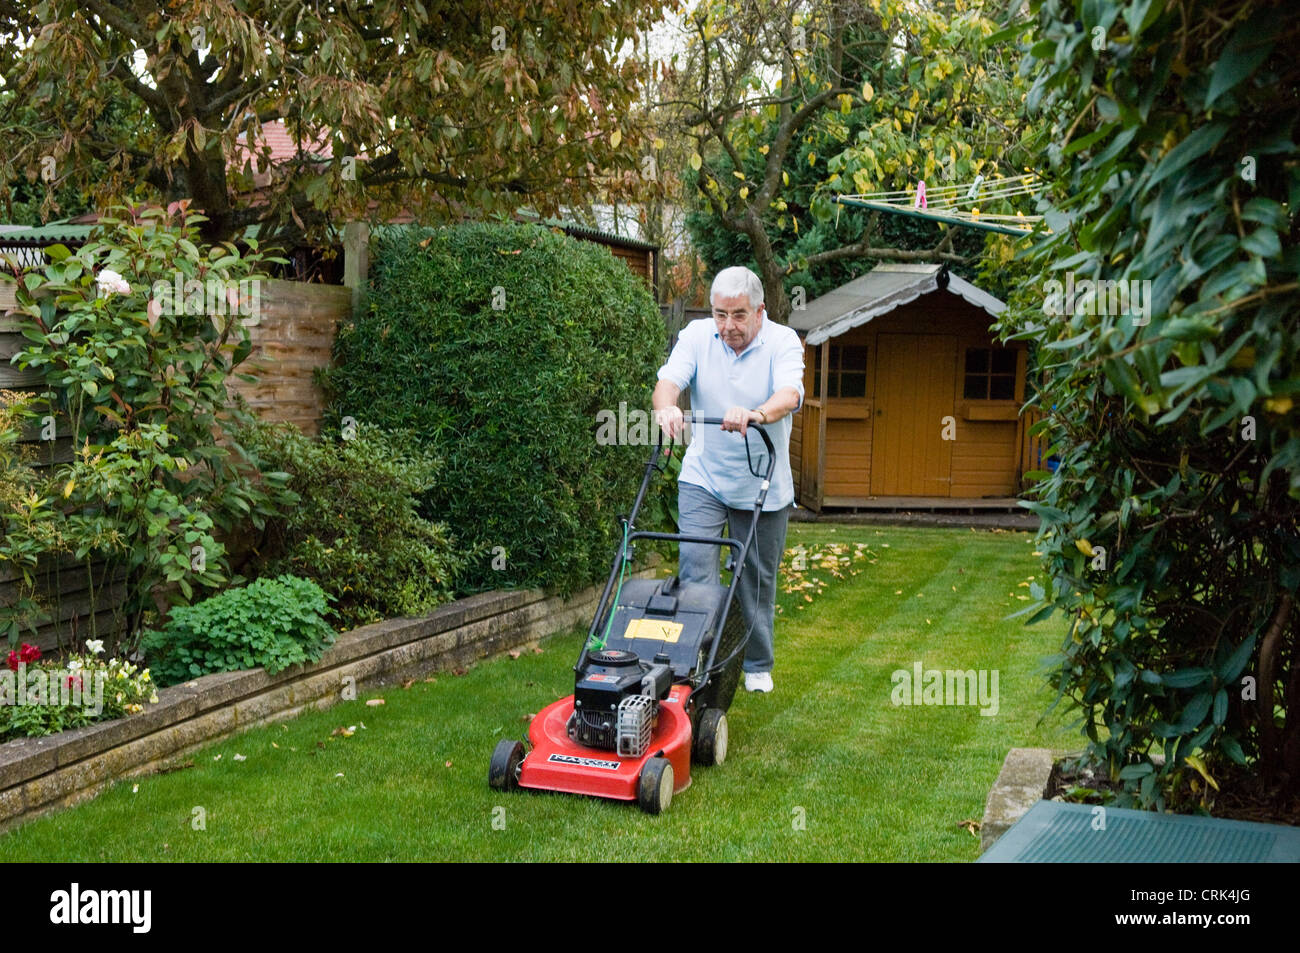 An elderly man maintains his garden by mowing the lawn. - Stock Image